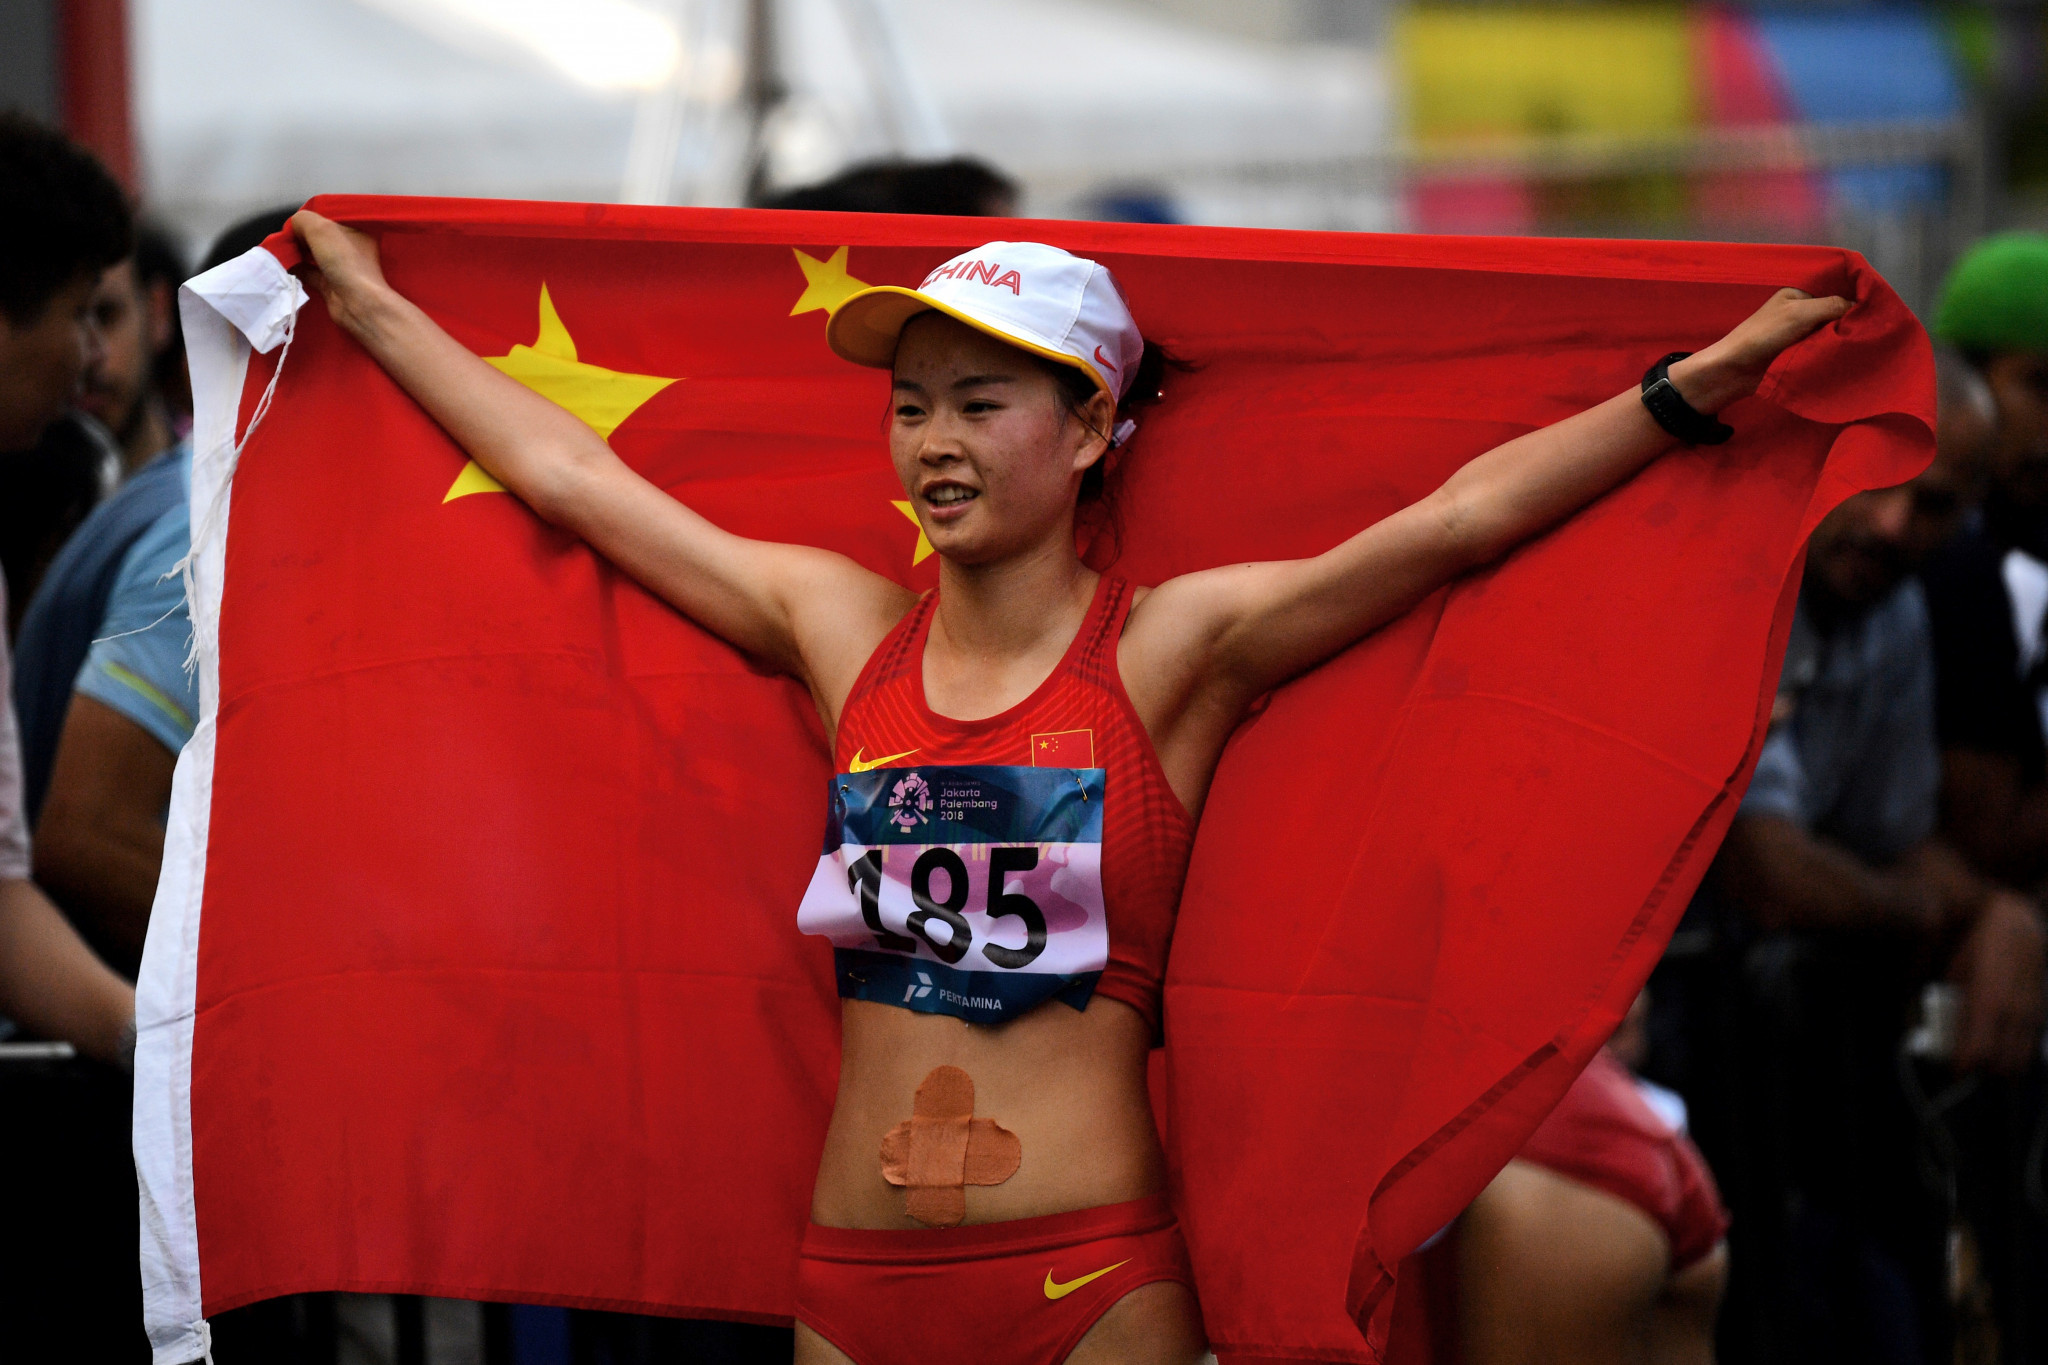 Yang takes 49 seconds off women's 20km race walk world record at China's National Championships